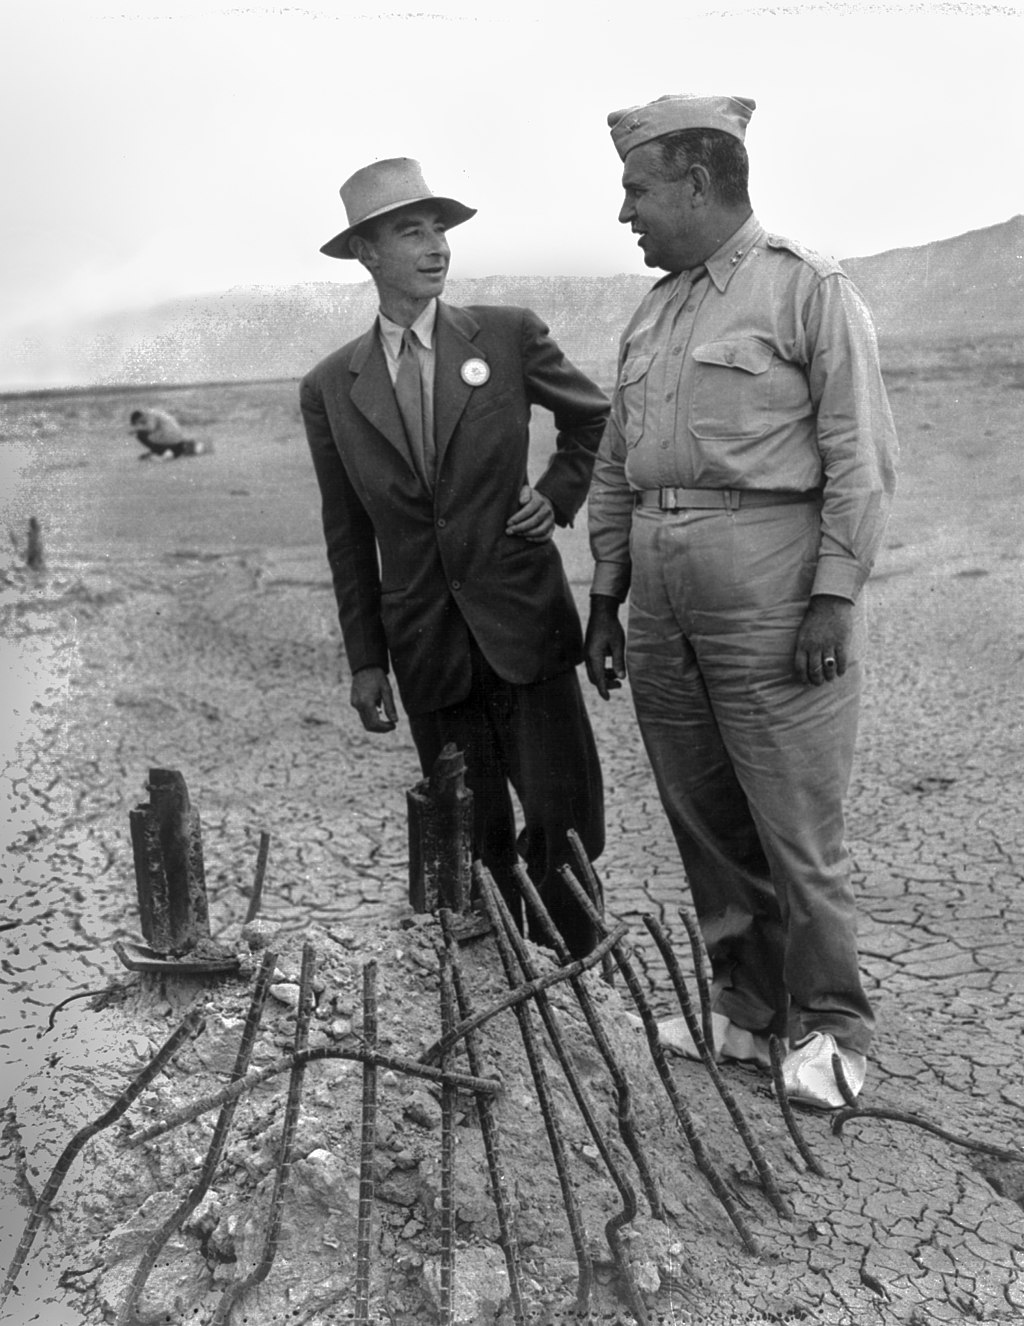 Oppenheimer and Leslie Groves in September 1945 at the remains of the Trinity test in New Mexico. The white canvas overshoes prevented fallout from sticking to the soles of their shoes.[188]